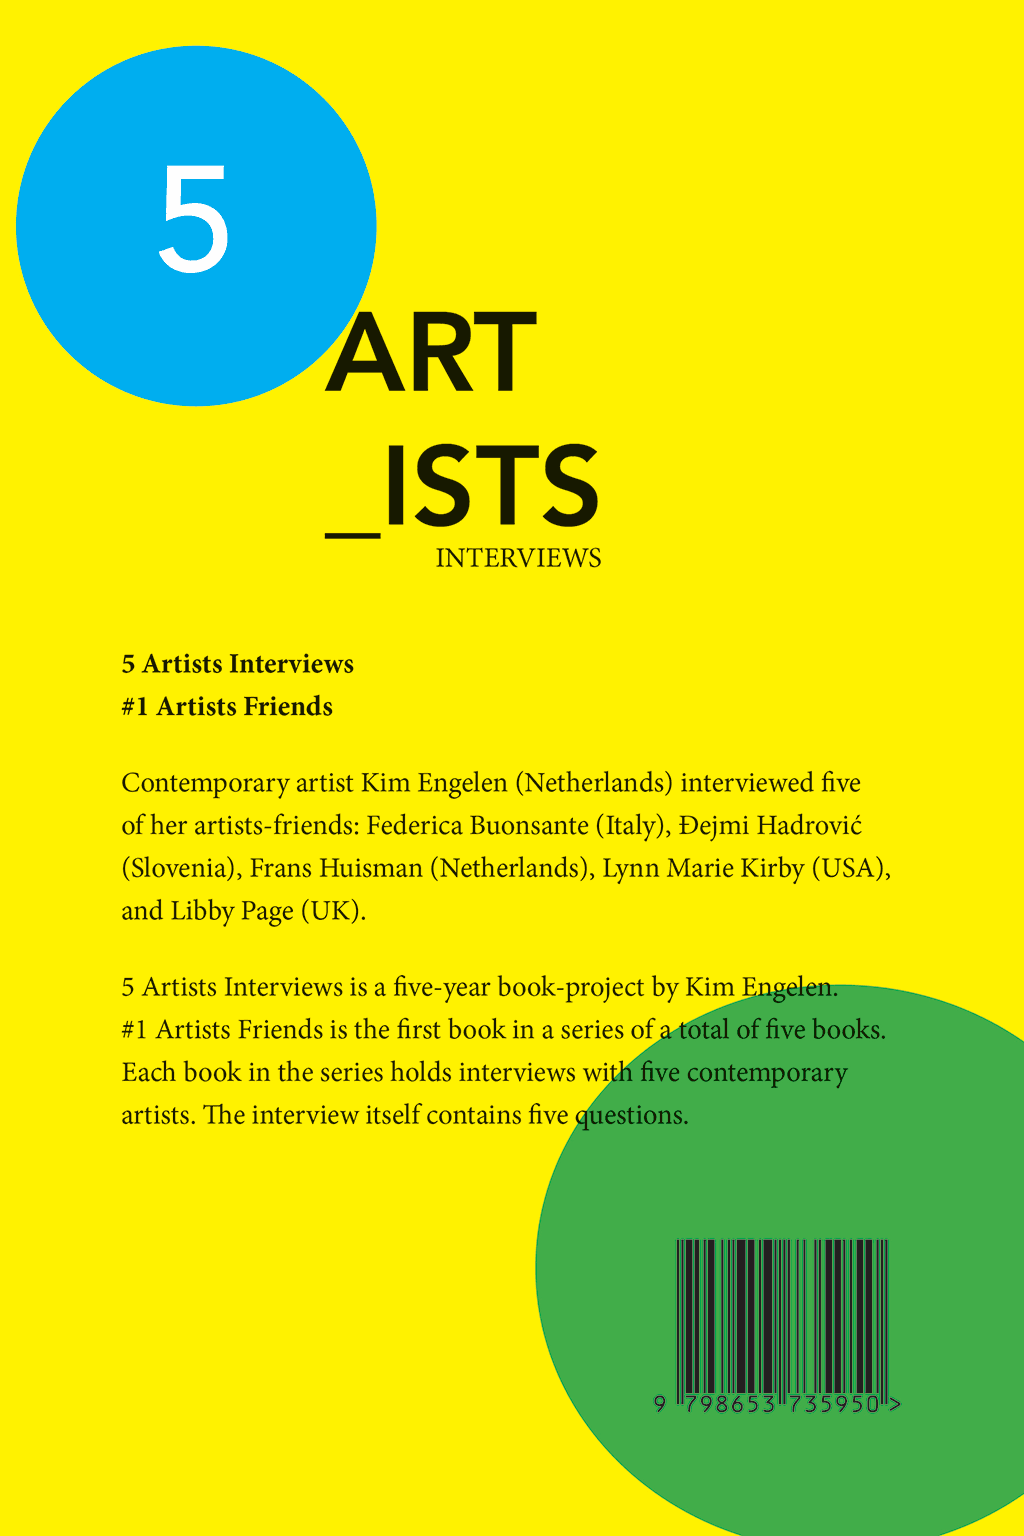 Kim Engelen, 5 Artists Interviews, #1 Artists Friends, Back-Cover, 2020